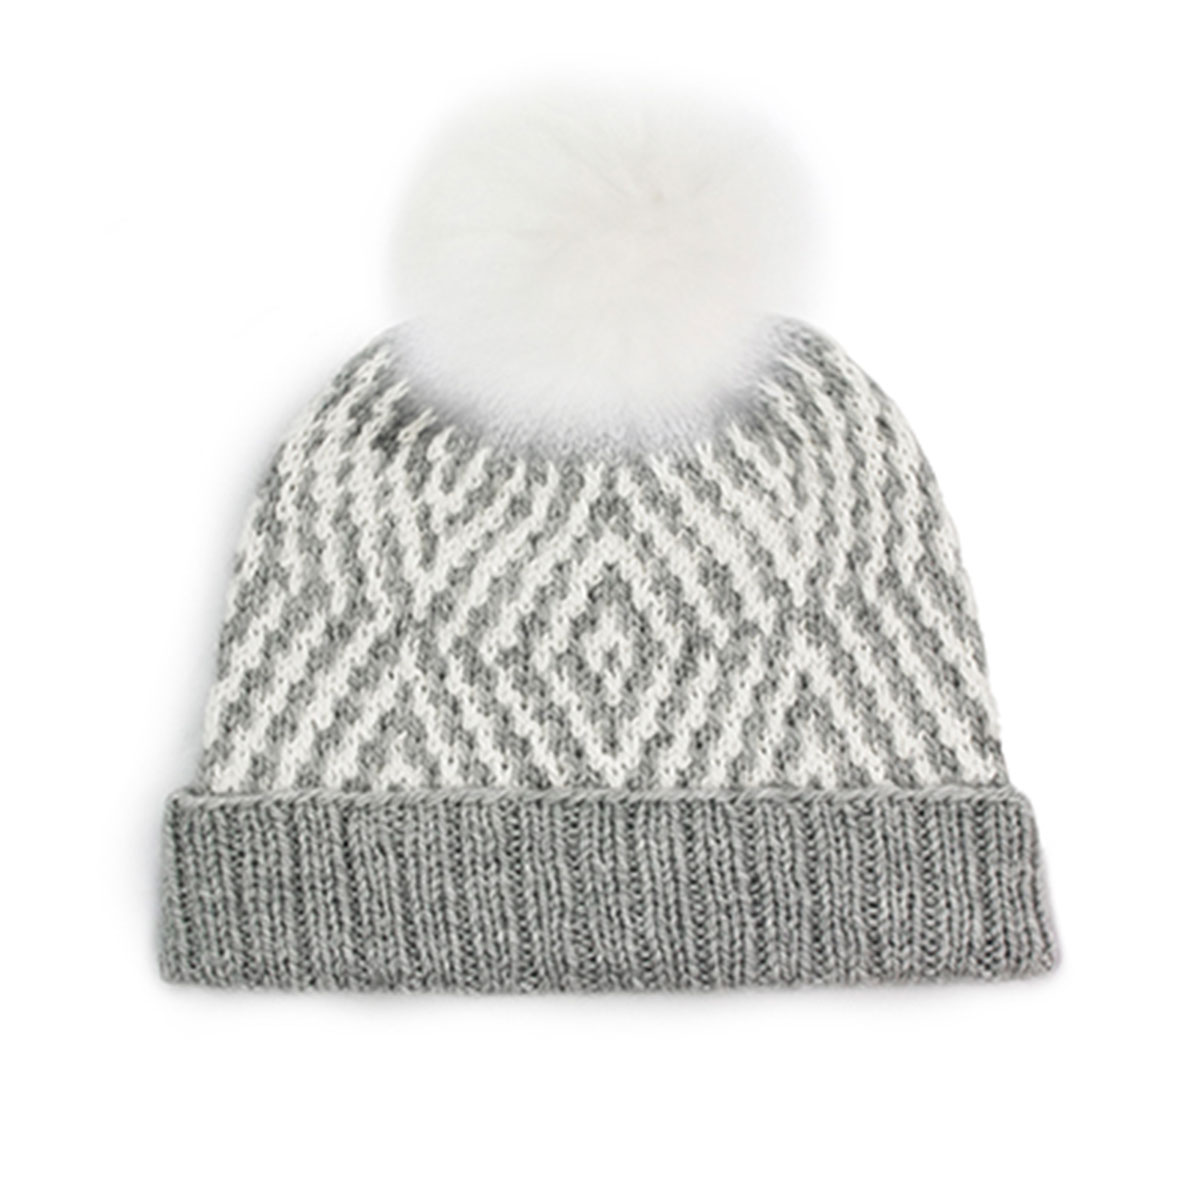 31ee7831f Toft Knitting Hat Kit - Cobblestone Hat at Jimmy Beans Wool